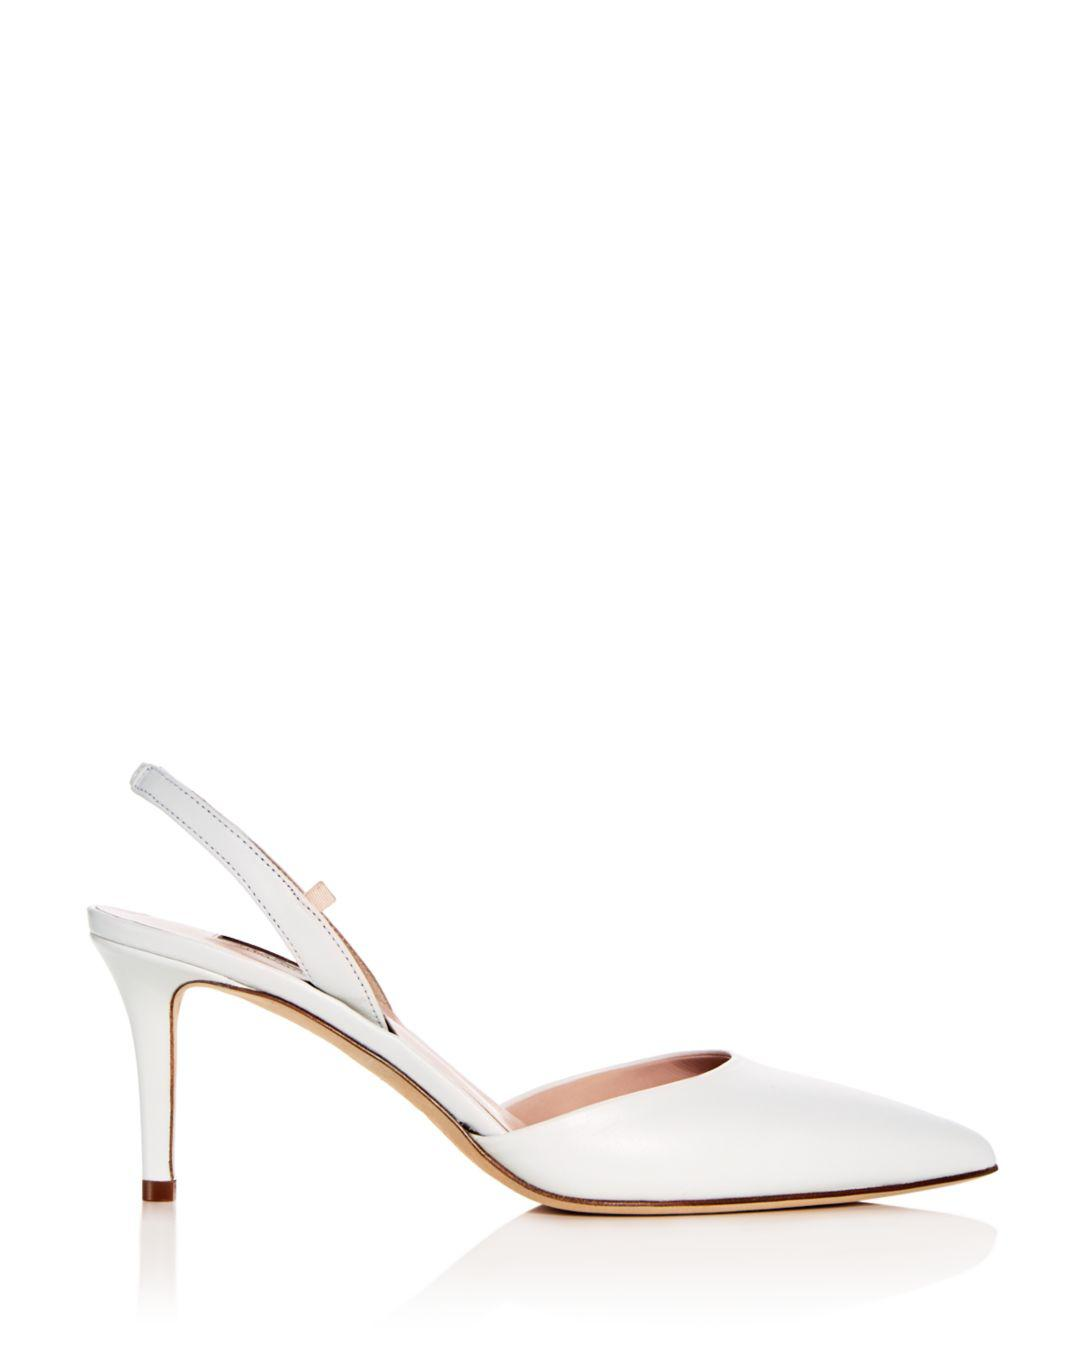 ad15666fe4c Lyst - SJP by Sarah Jessica Parker Women s Bliss Leather Slingback ...